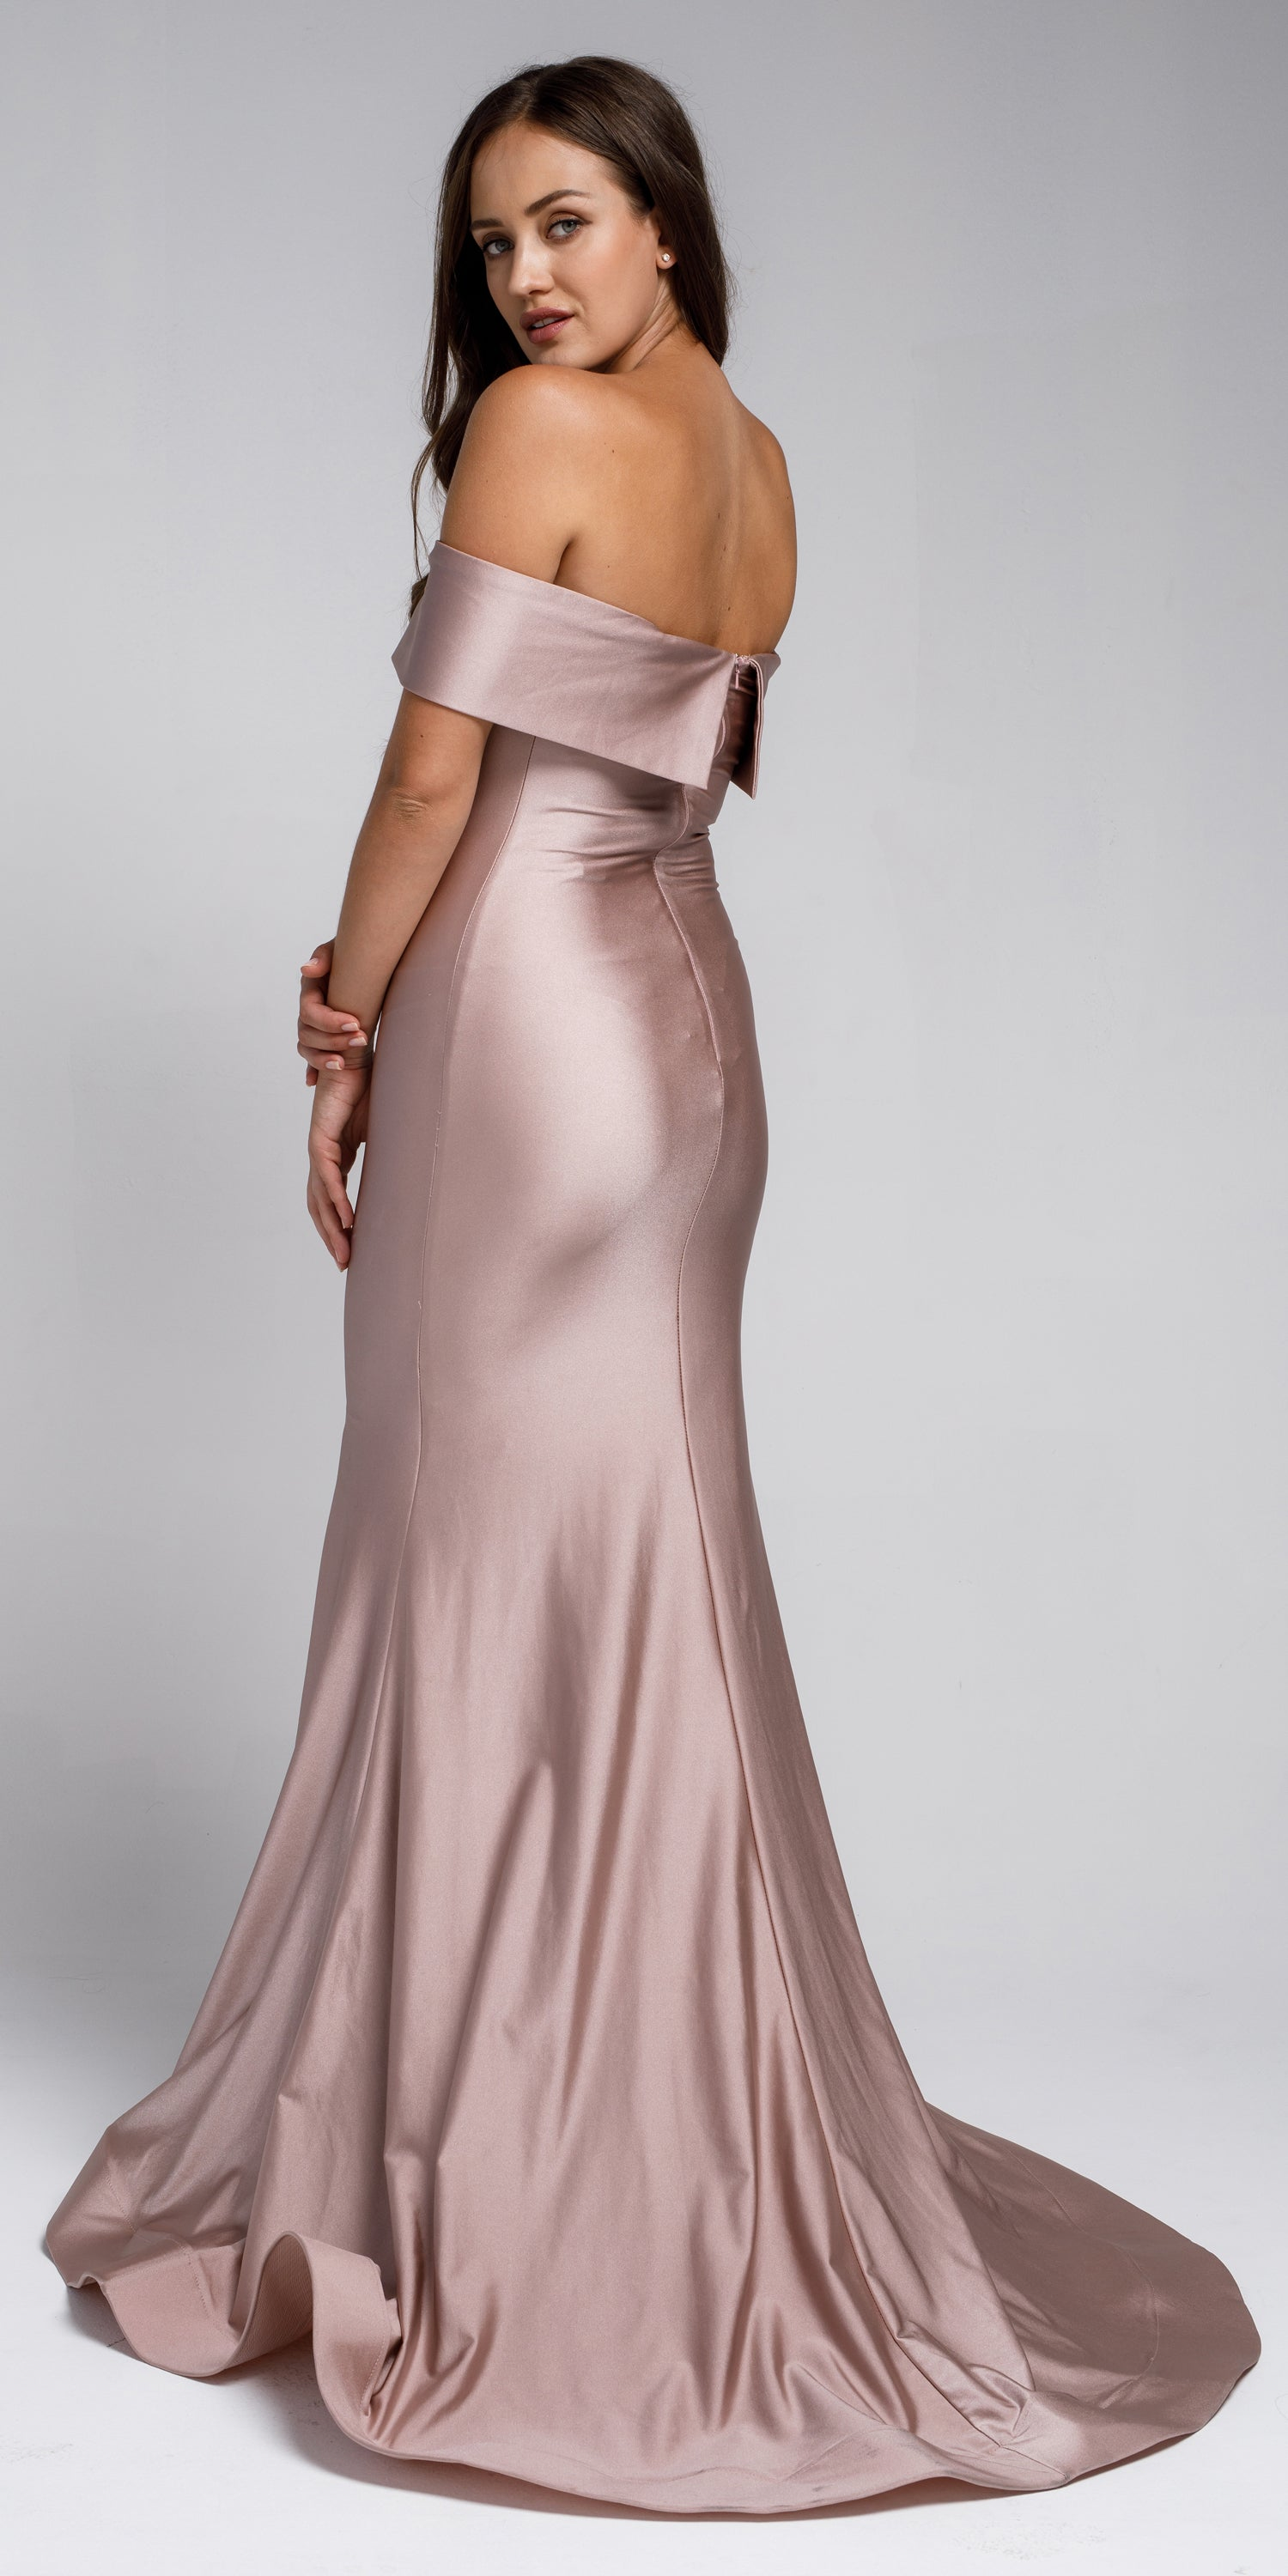 Image of Off Shoulder Fitted Prom Gown back in Rose